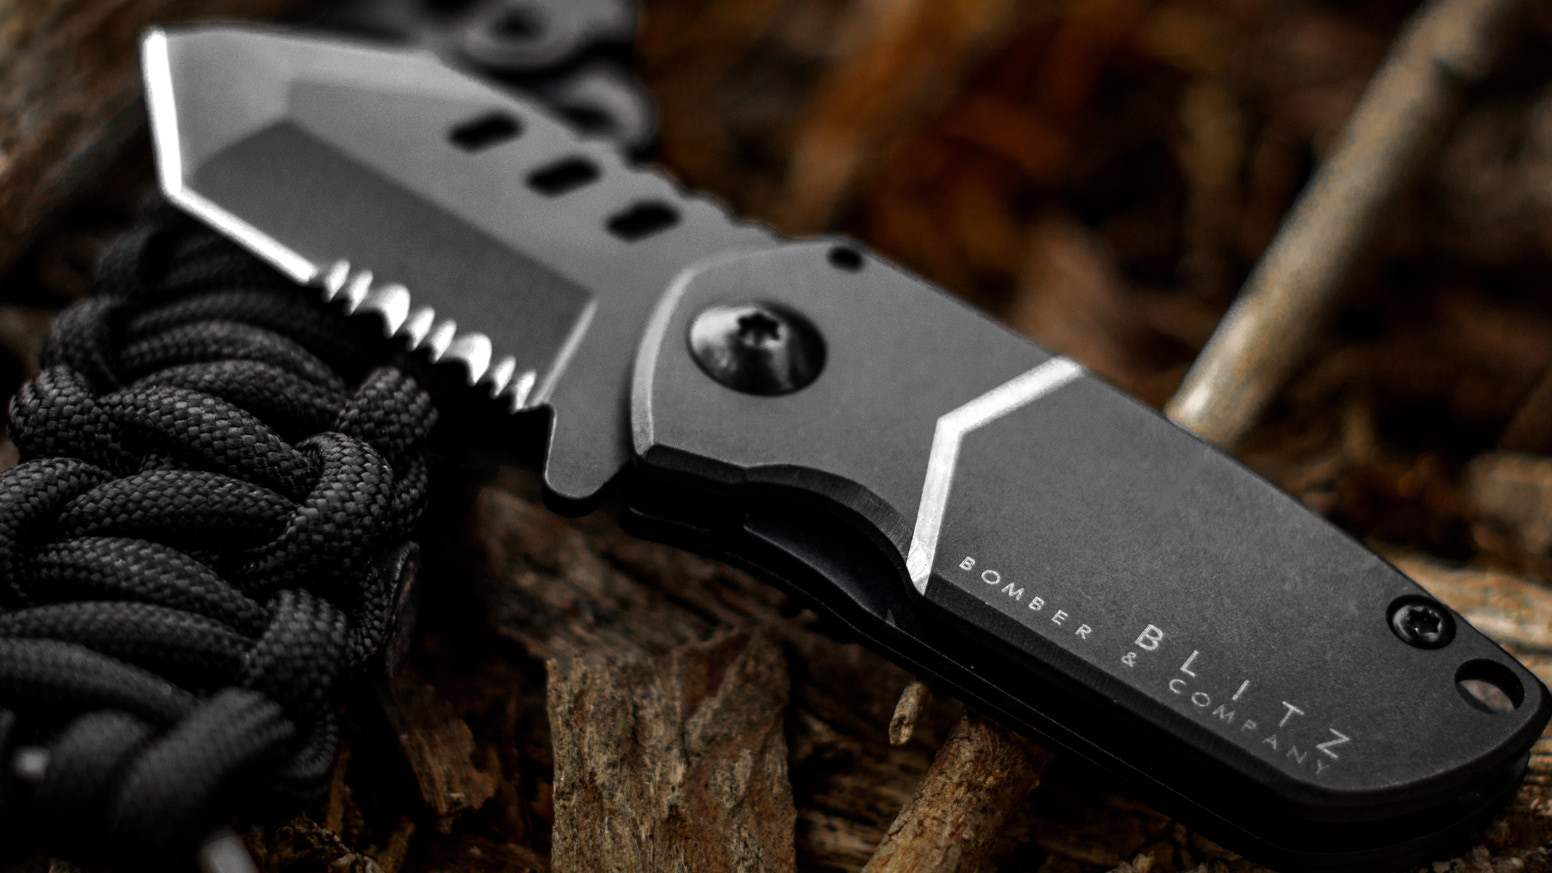 72e72b4c3 B-2 BLITZ | Small Pocket Knife Designed by Backers by Bomber ...